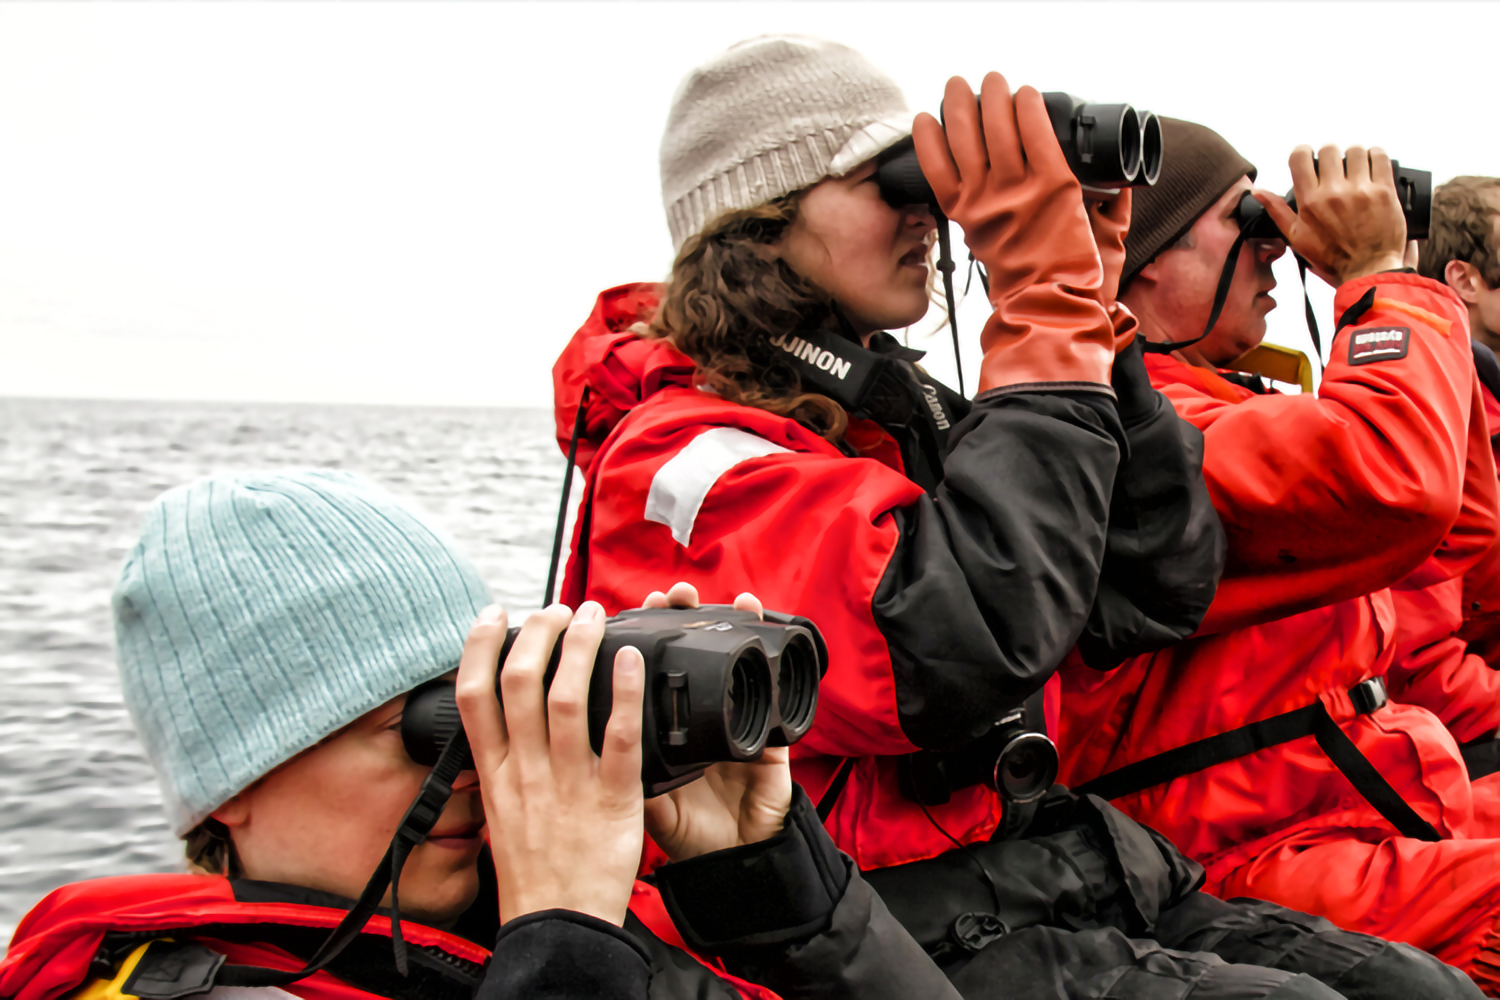 Scientists on a boat observe the ocean with binoculars.